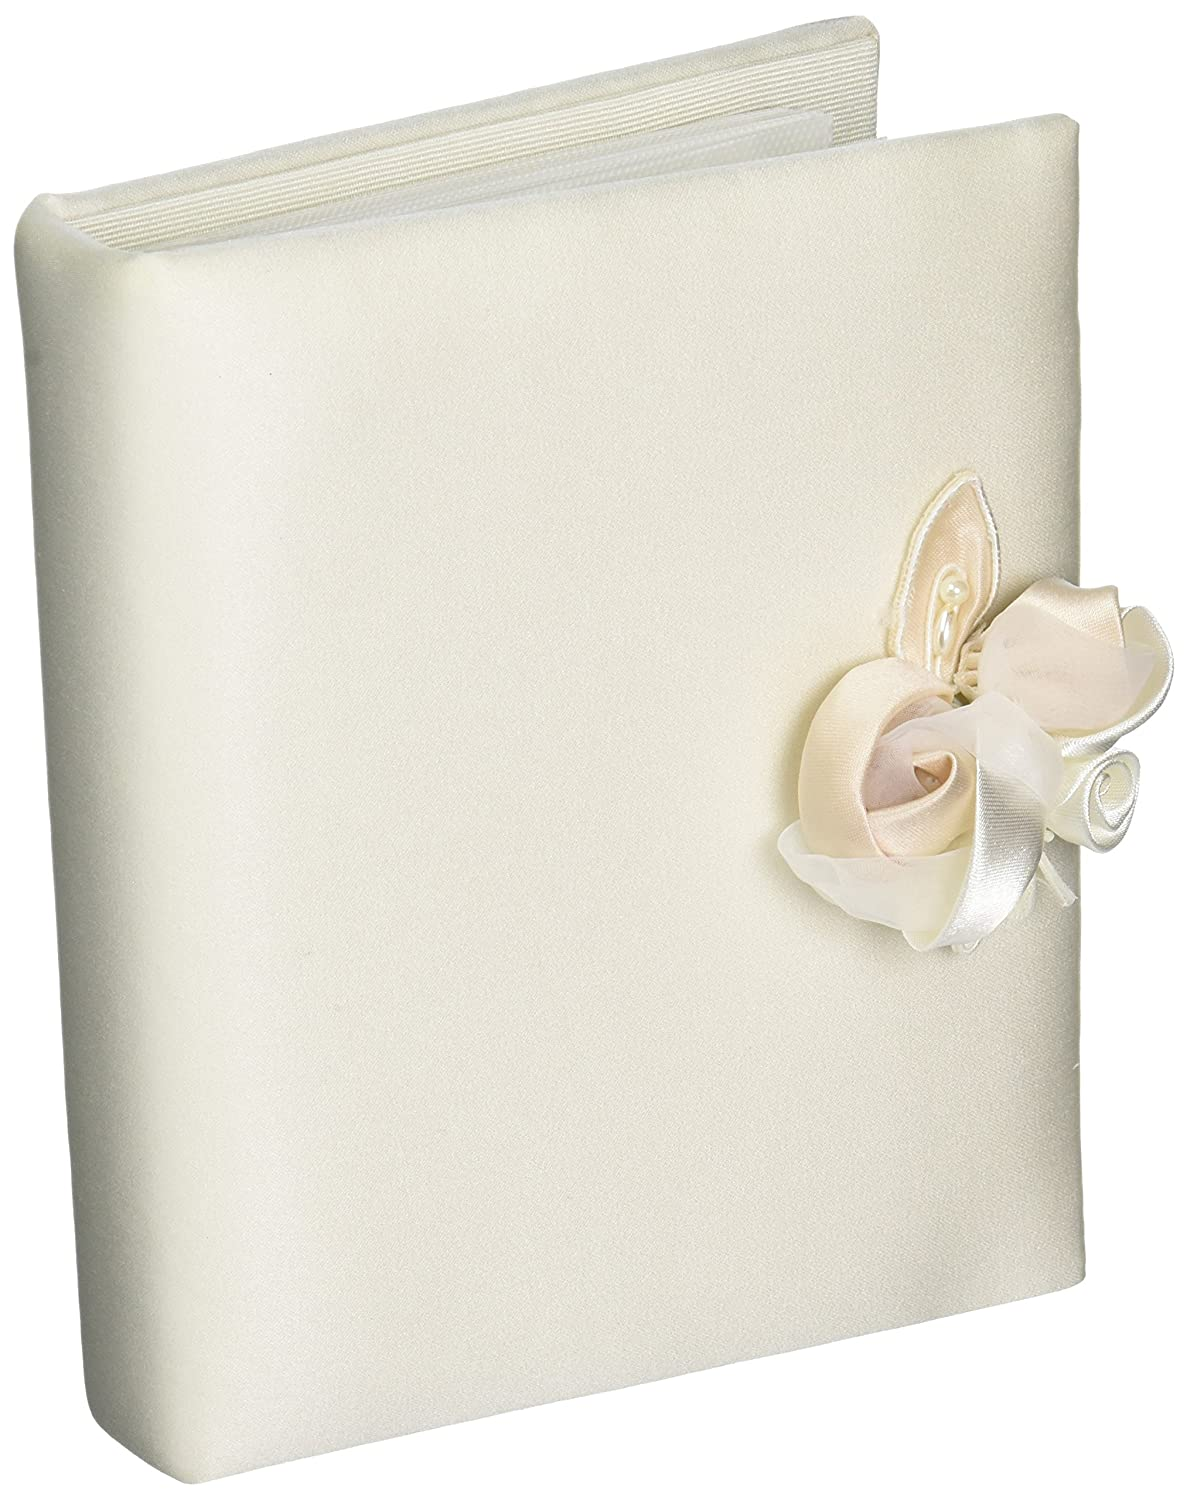 Ivy Lane Design presents Beverly Clark Collection Amour Wedding Album, 4-Inch by 6-Inch, Ivory 41KI